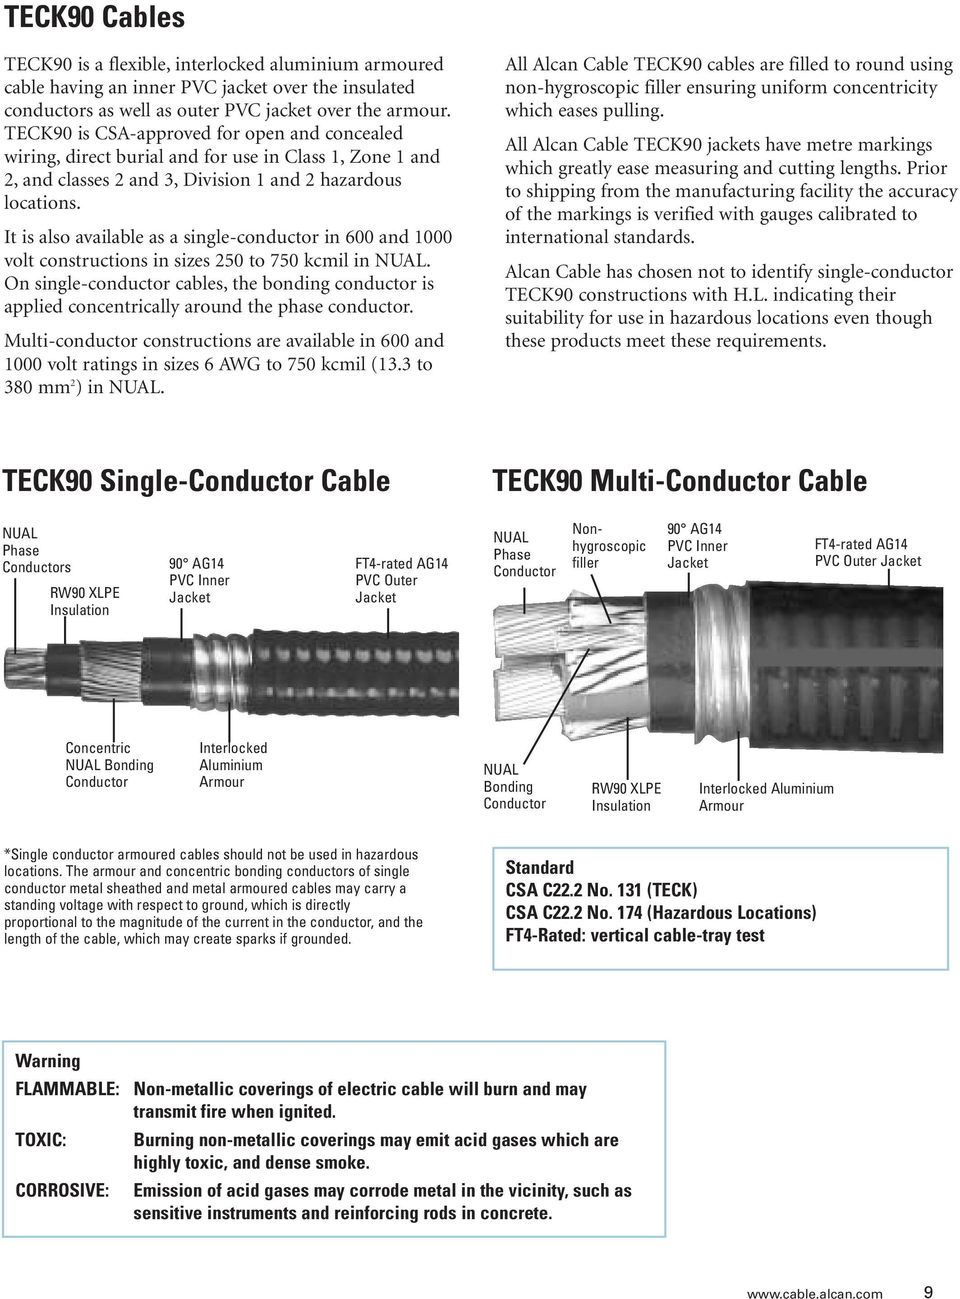 Alcan cable armoured cable canadian product catalogue grounded in it is also available as a single conductor in 600 and 1000 volt constructions in keyboard keysfo Choice Image